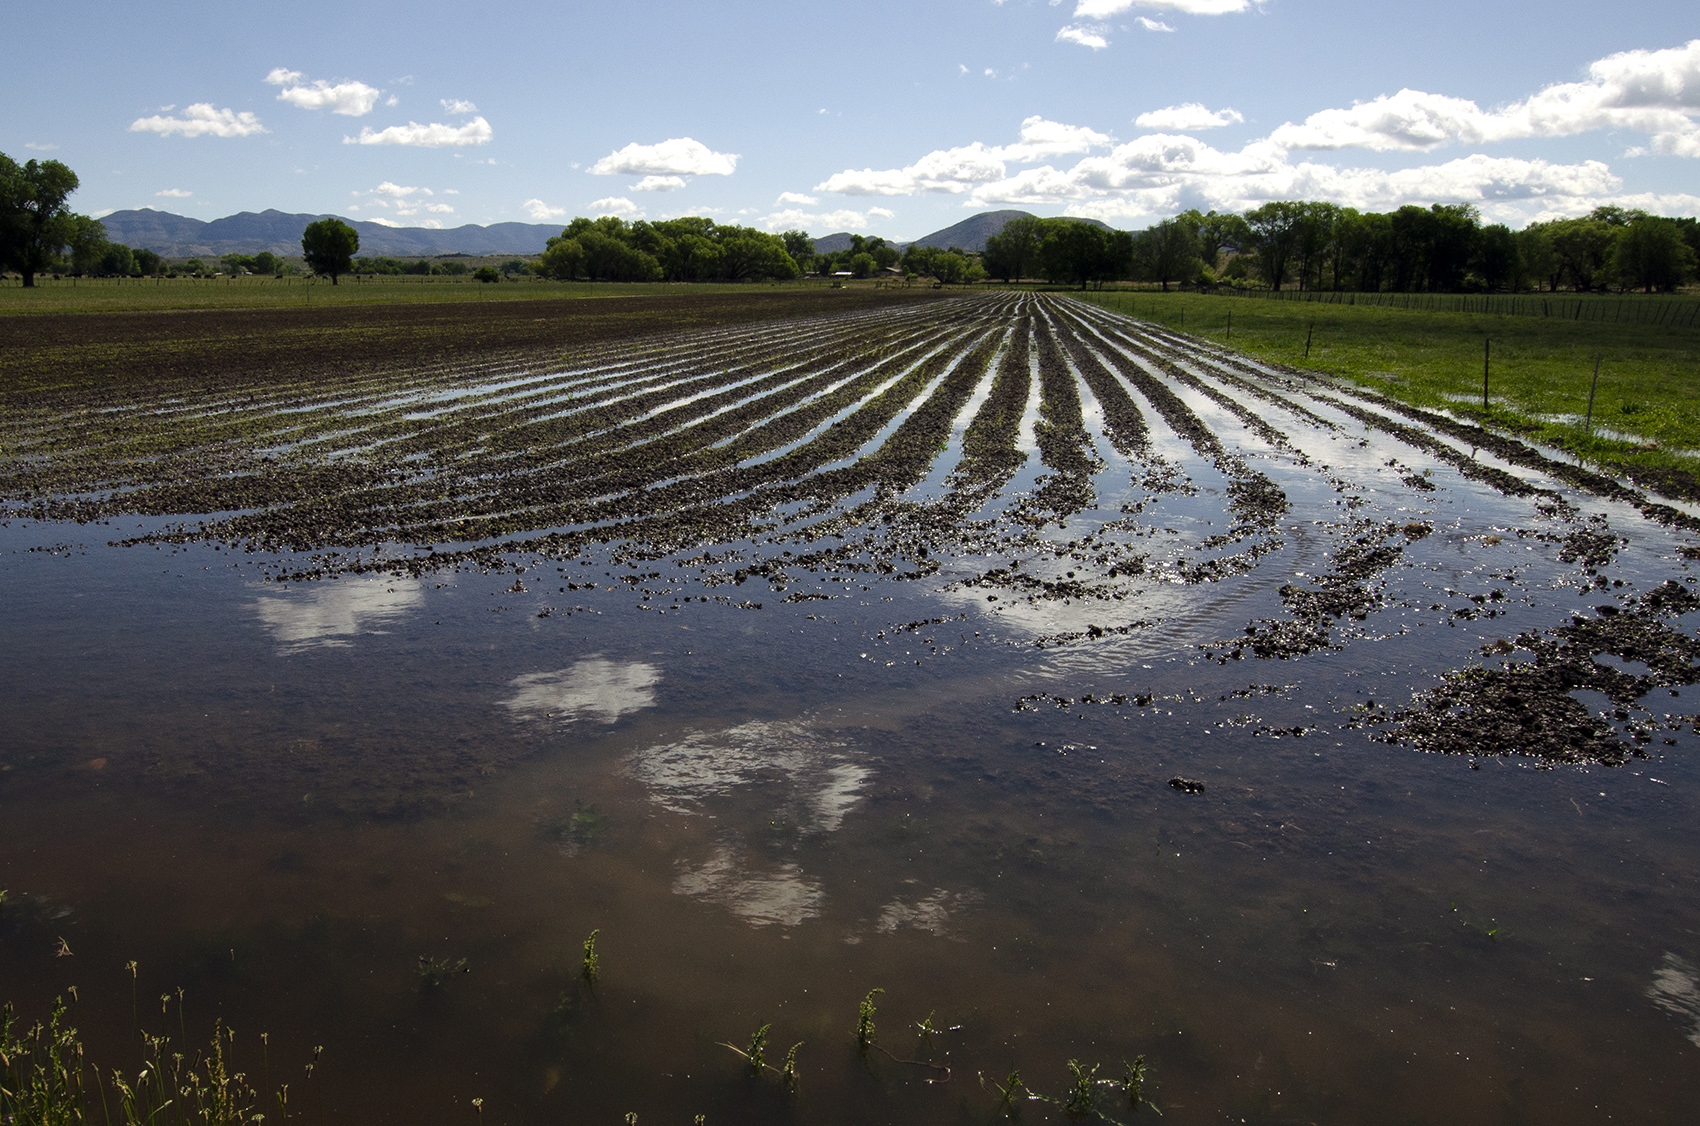 Farmers in the Cliff-Gila Valley flood their fields with water diverted from the Gila River to grow pasture for cattle.